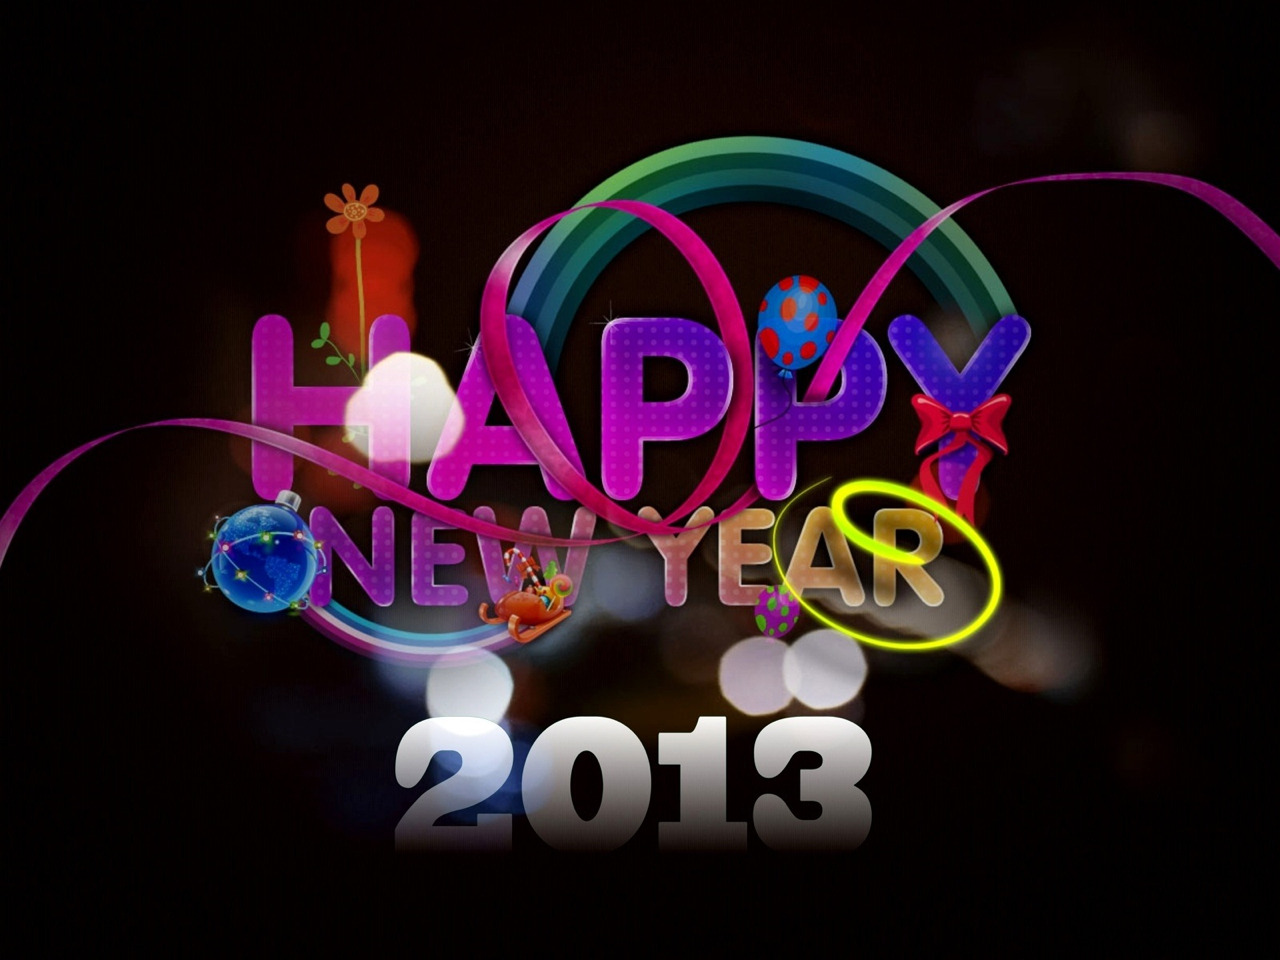 YAY!!! A year finally over and a new year just beginning. May this year be filled with hope and happiness!!!!! And damn yea we made it through another year! WOOHOO!!!!:)